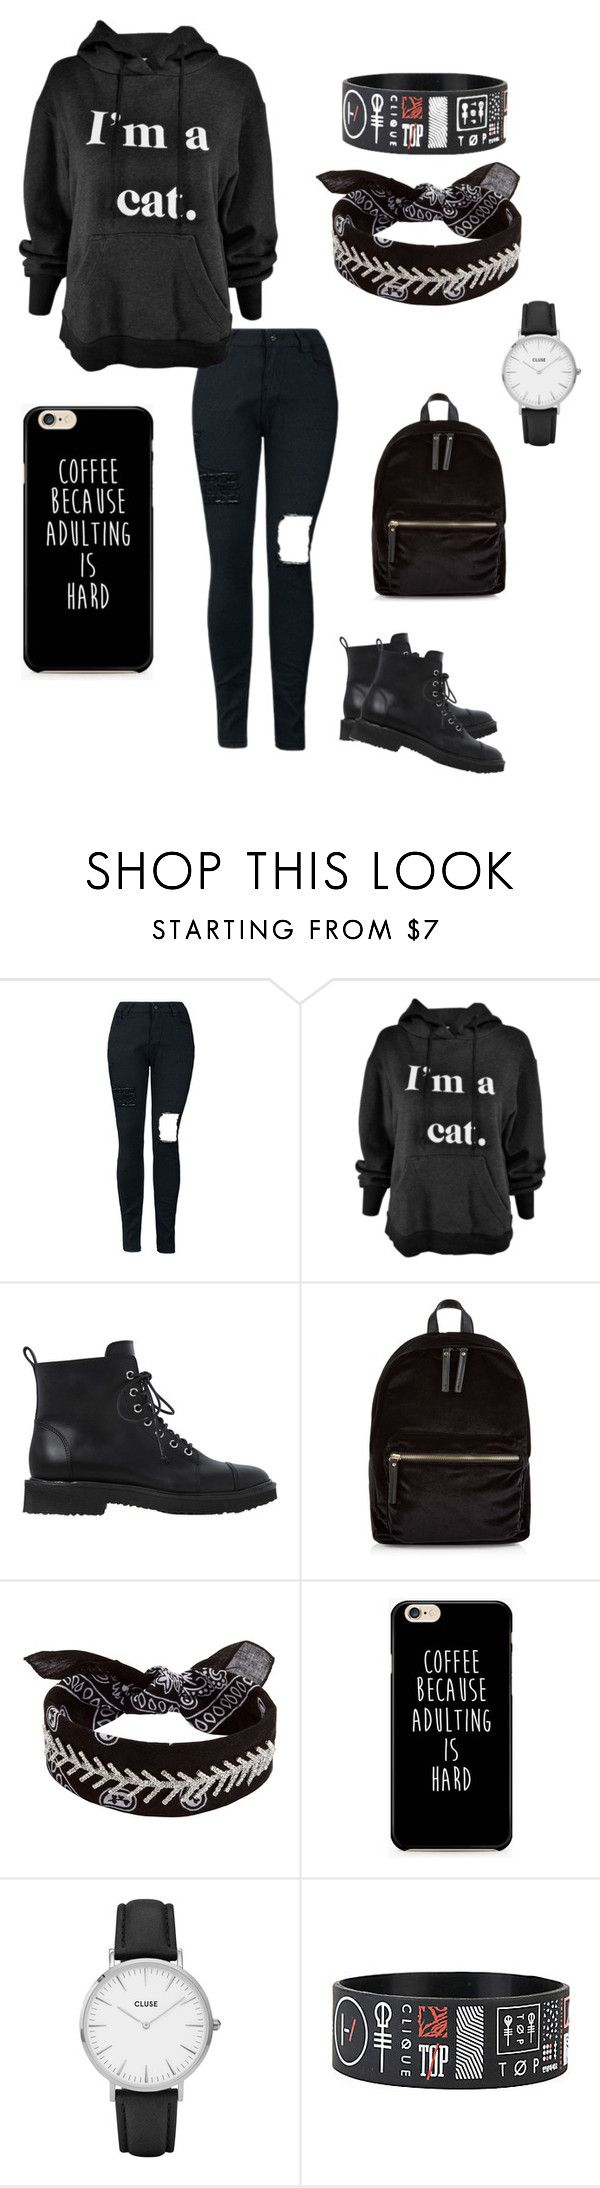 """ehh"" by svdalen on Polyvore featuring mode, Giuseppe Zanotti, New Look, Fallon en CLUSE"